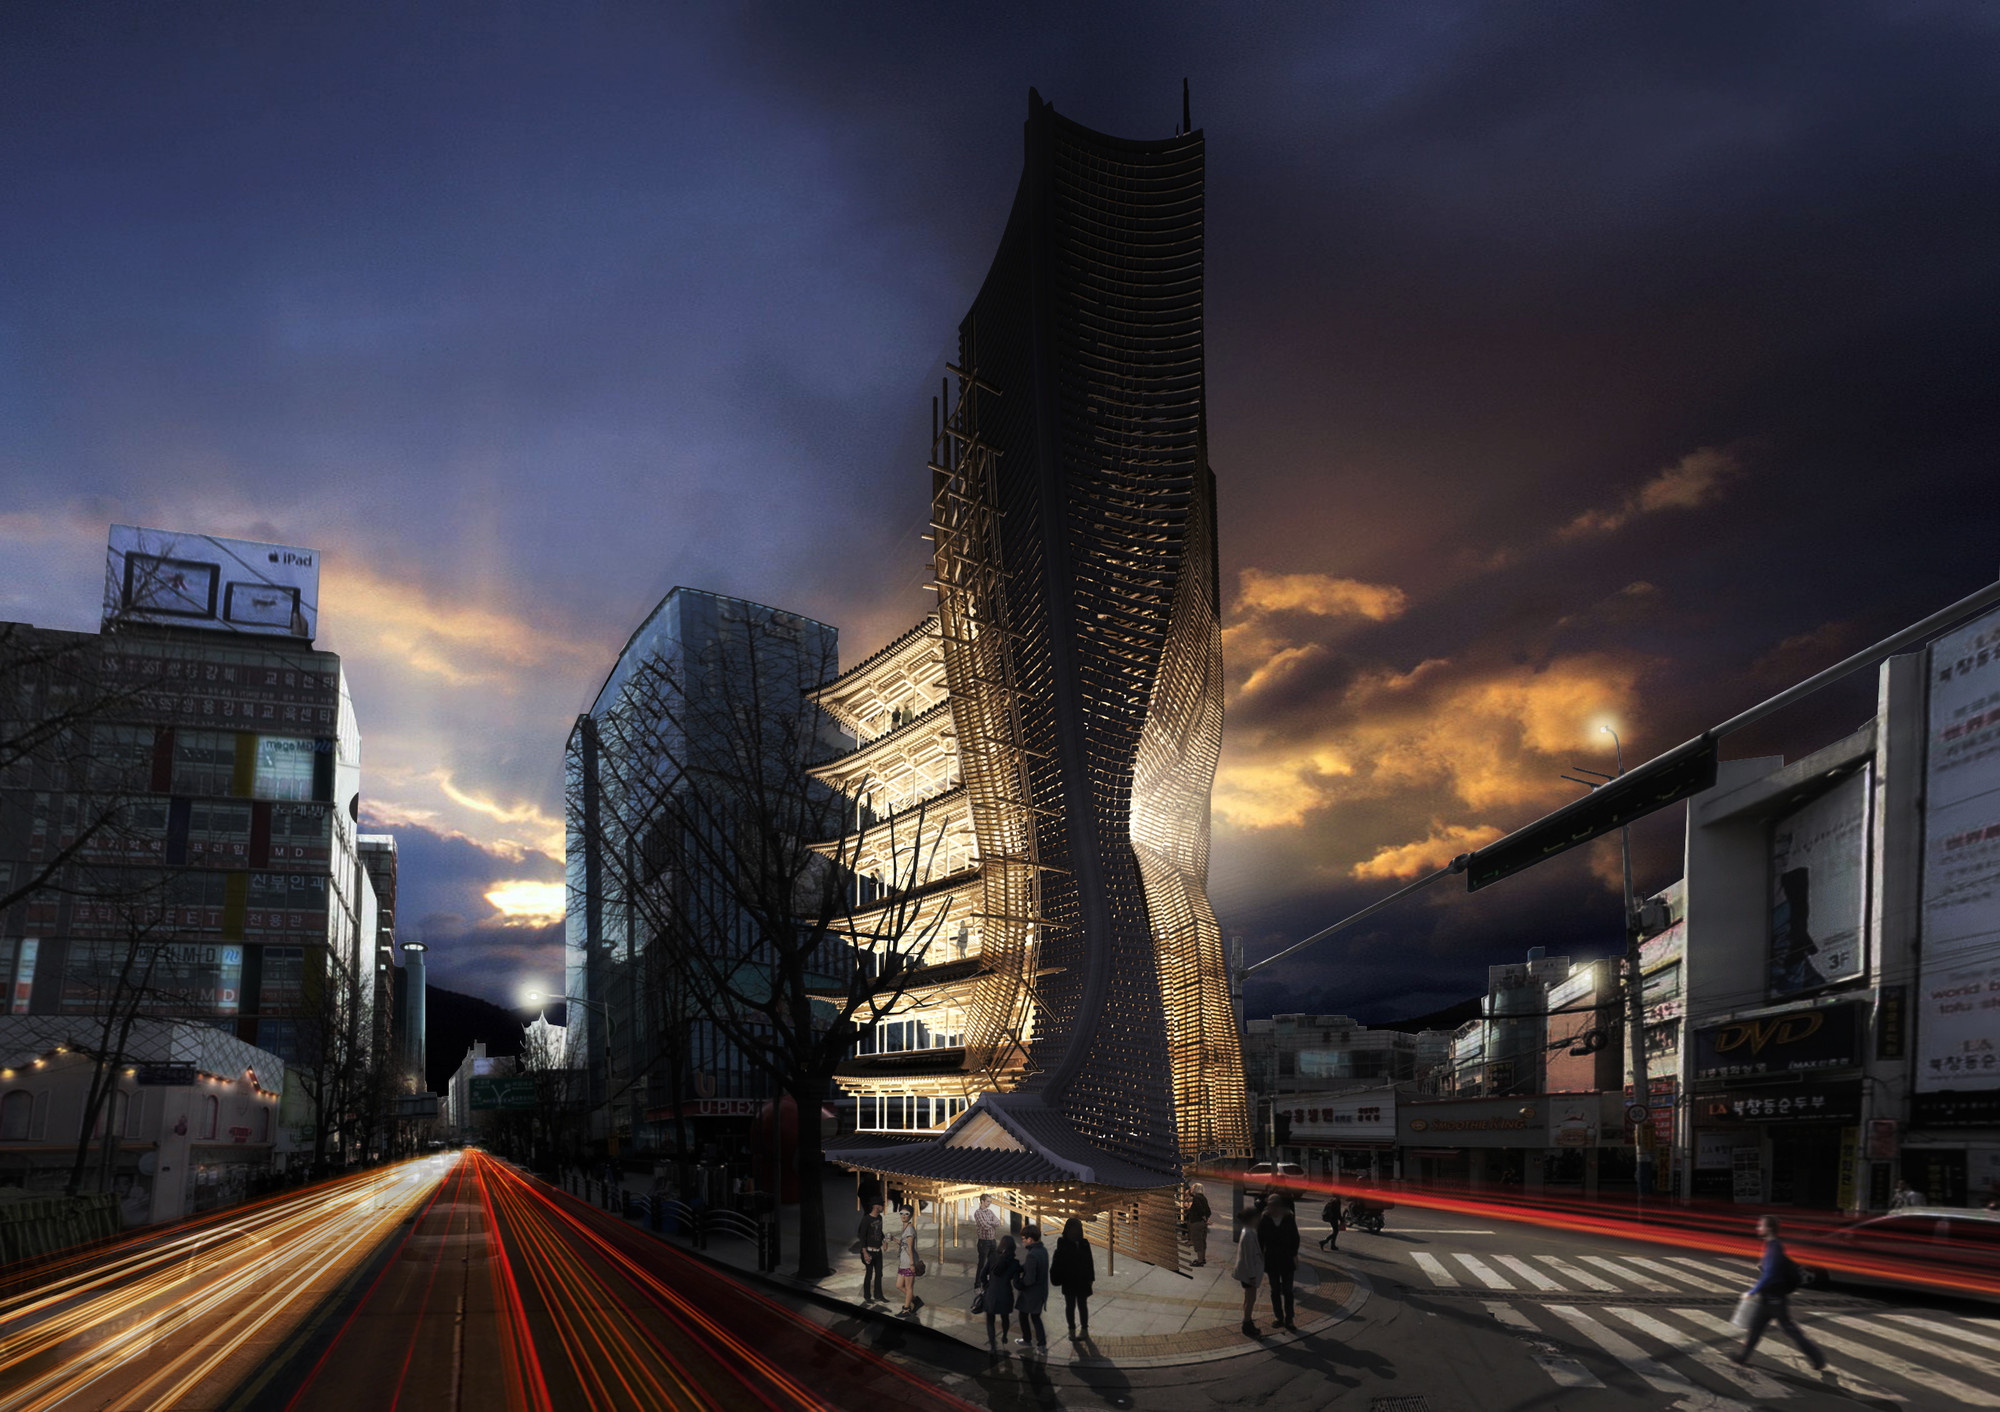 eVolo Skyscraper Winner 2014 Transforms Korean 'Hanok' Into Impressive High-Rise, Visualisation. Image © Yong Ju Lee